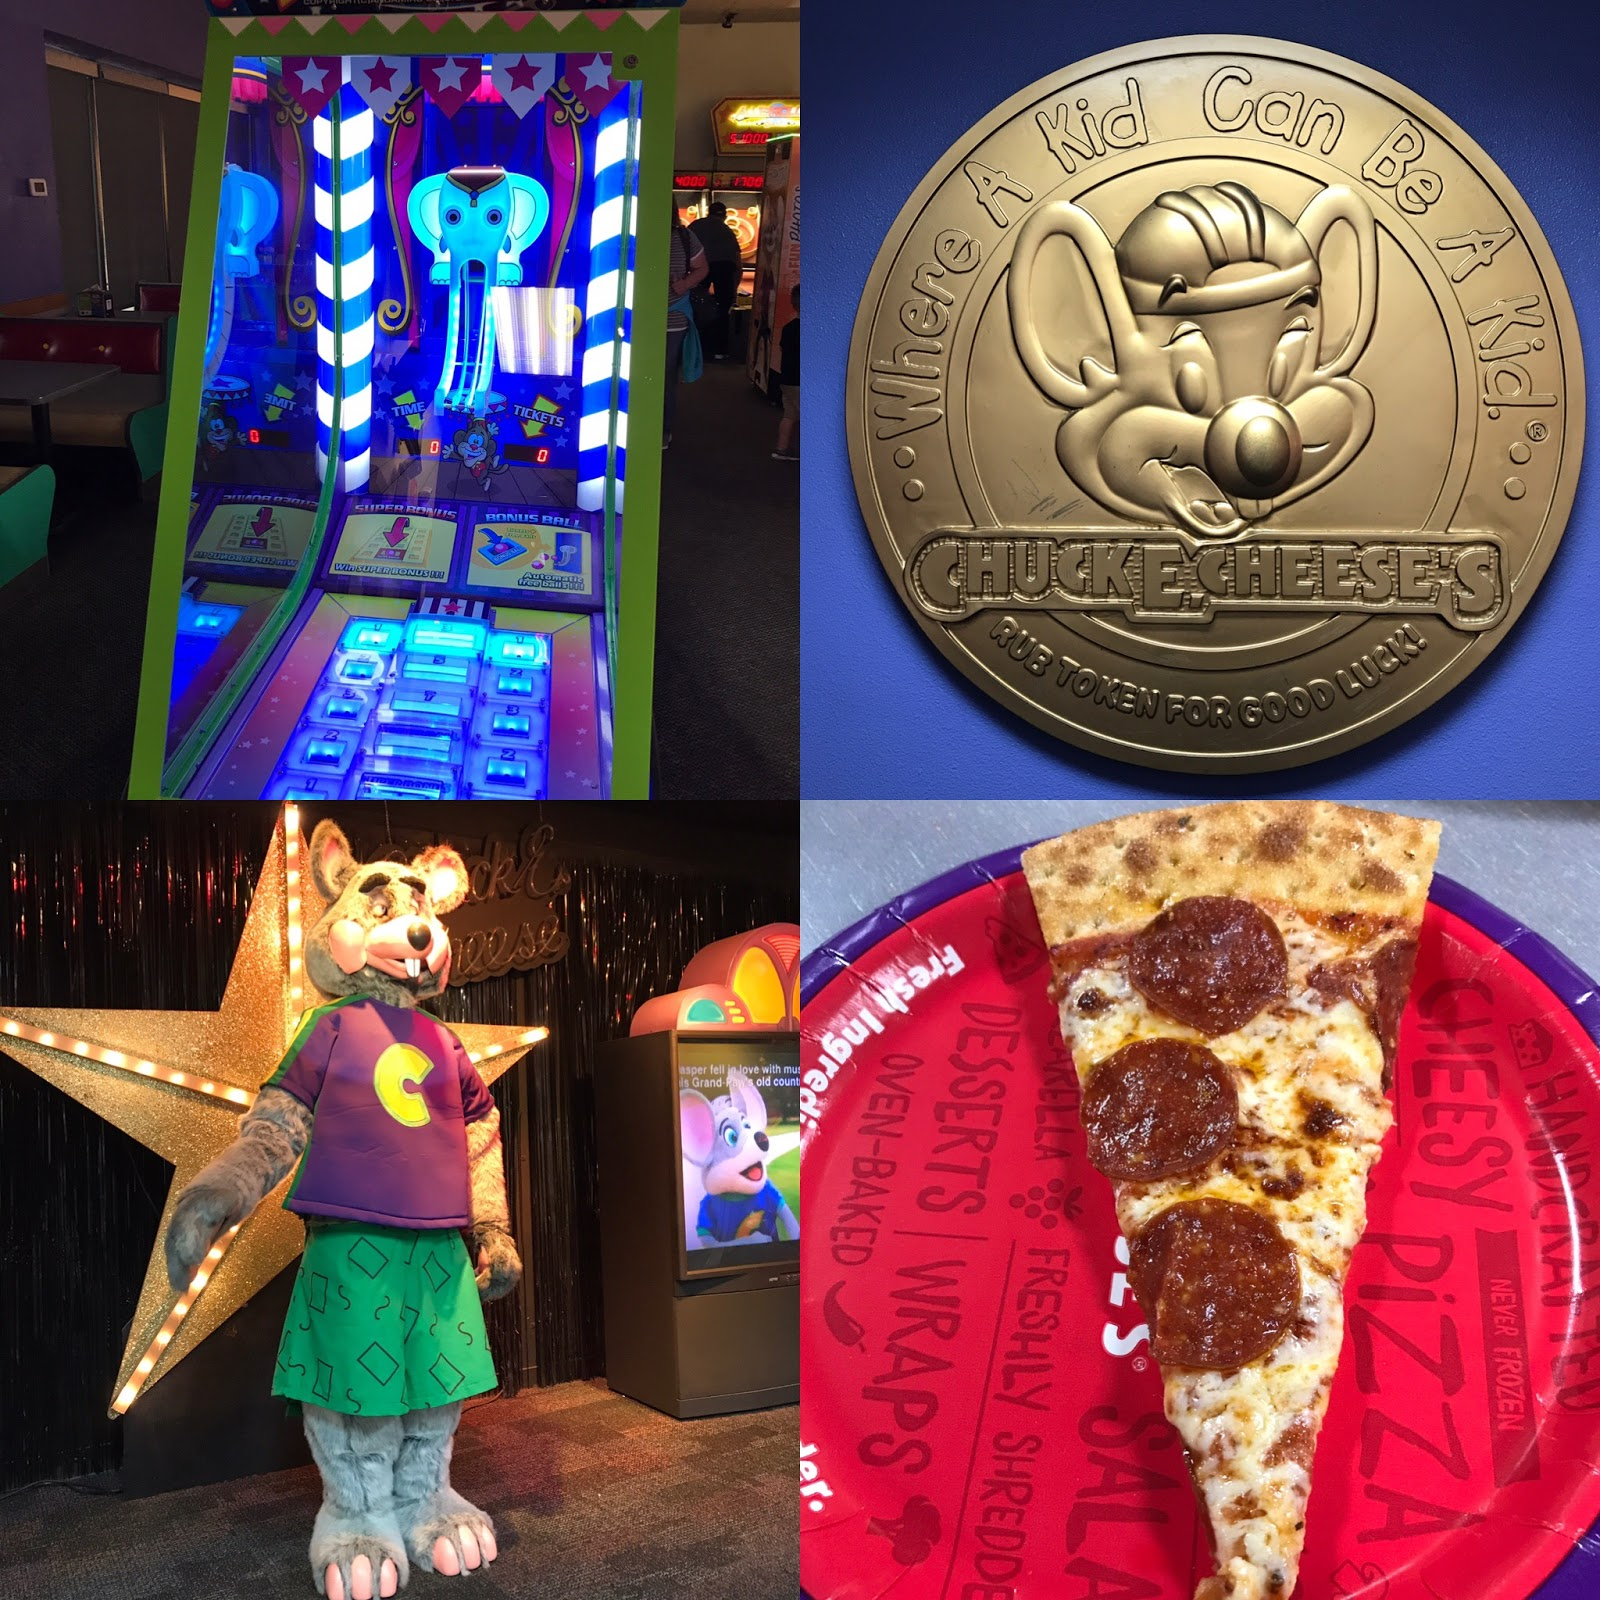 Didn't get a stuffed teddy during Build-A-Bear's promotion on Thursday? Chuck E. Cheese wants to help. The popular children's restaurant chain announced on Facebook their own version of Build-A.